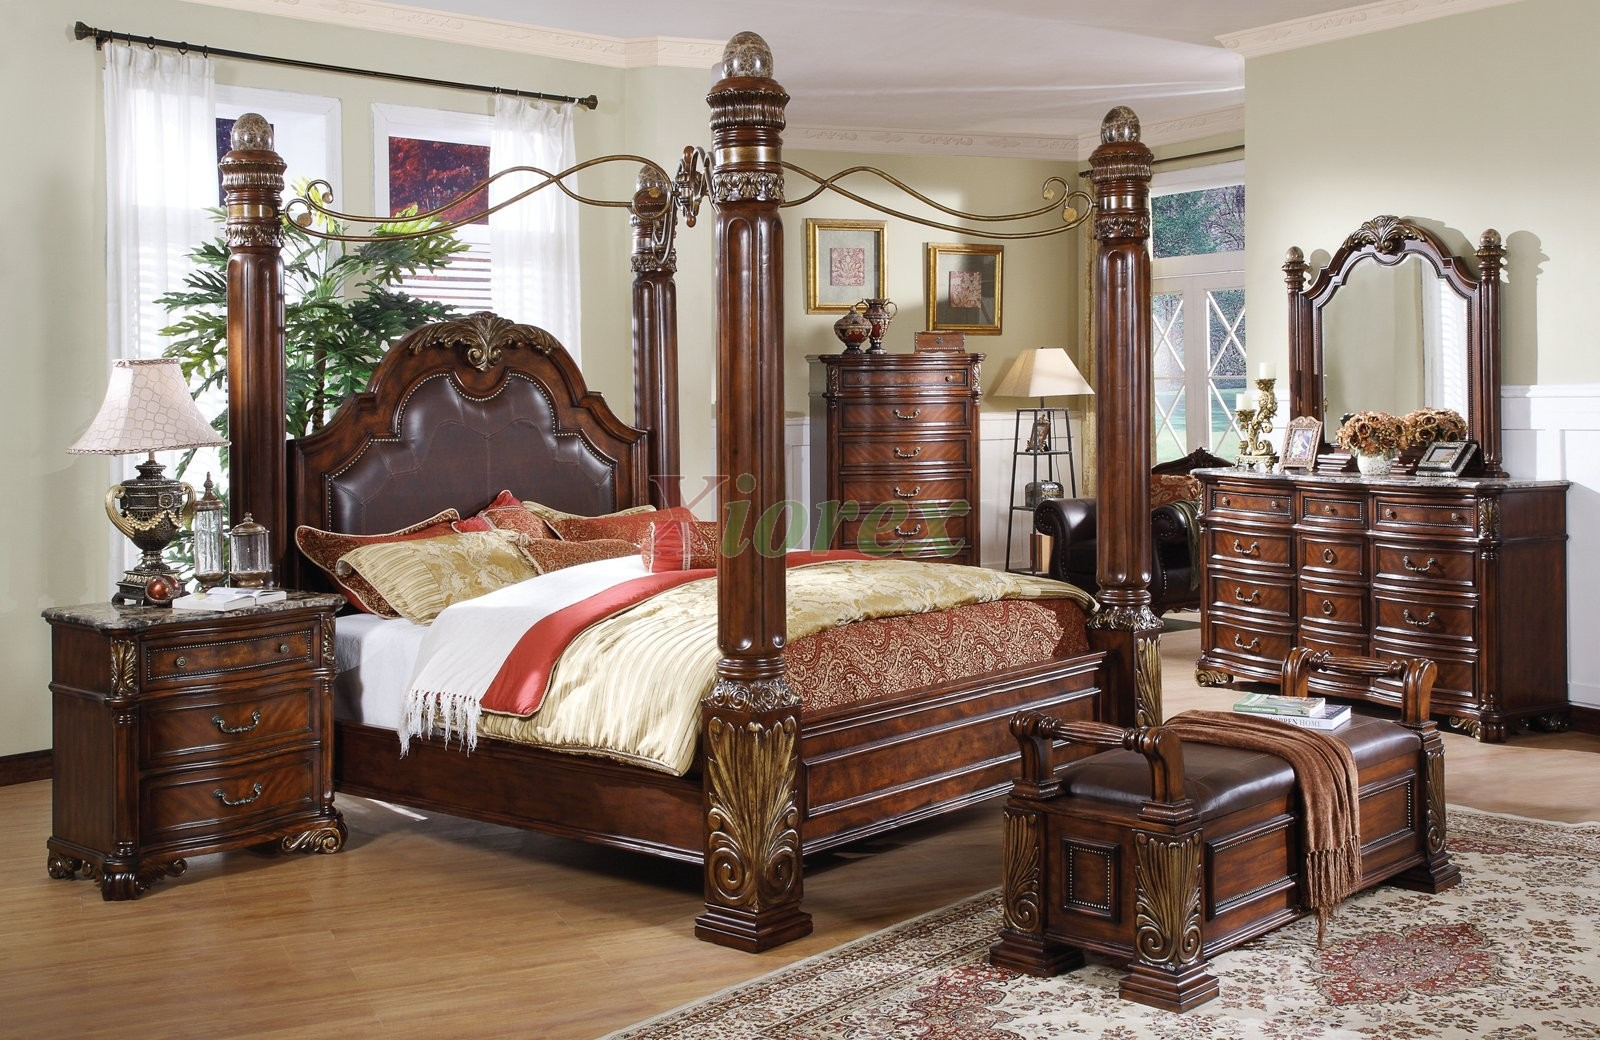 Canopy bed sets bedroom furniture sets w poster canopy for 3 bedroom set